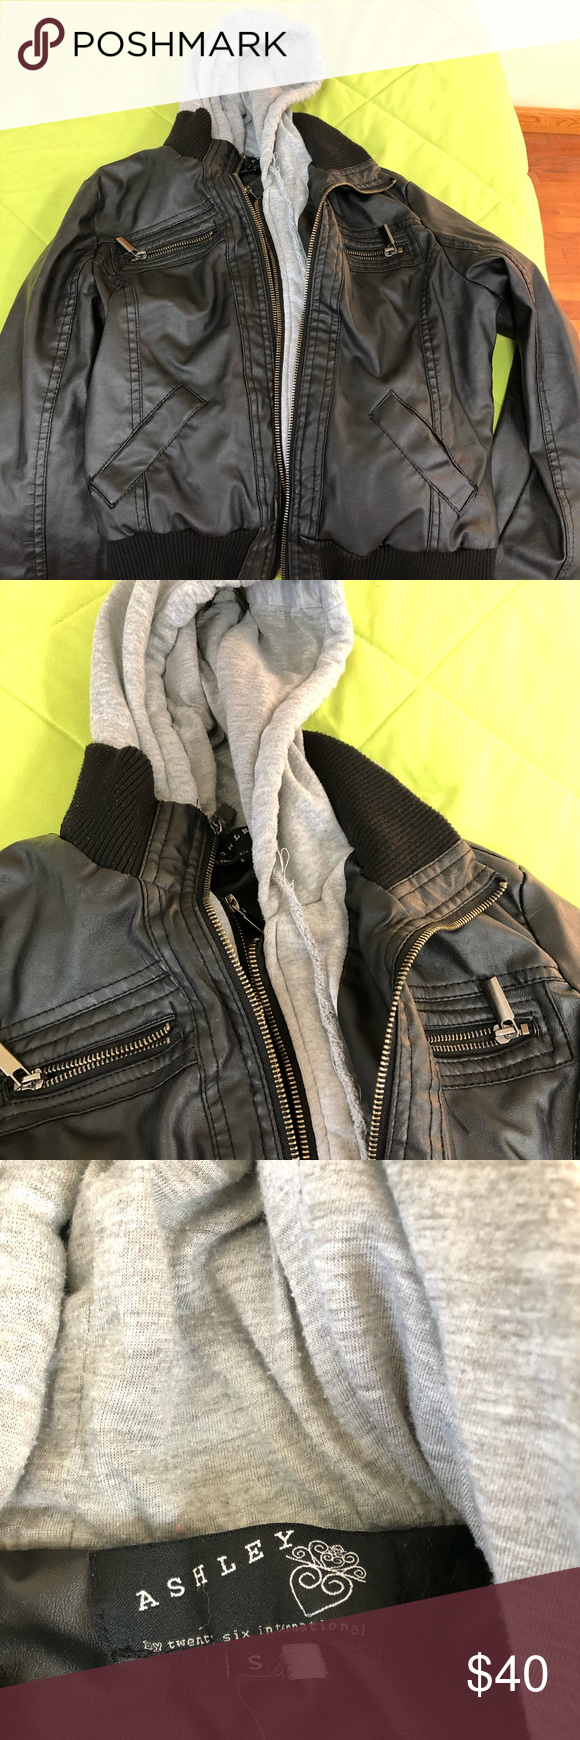 Black leather jacket with gray hoodie attached Grey